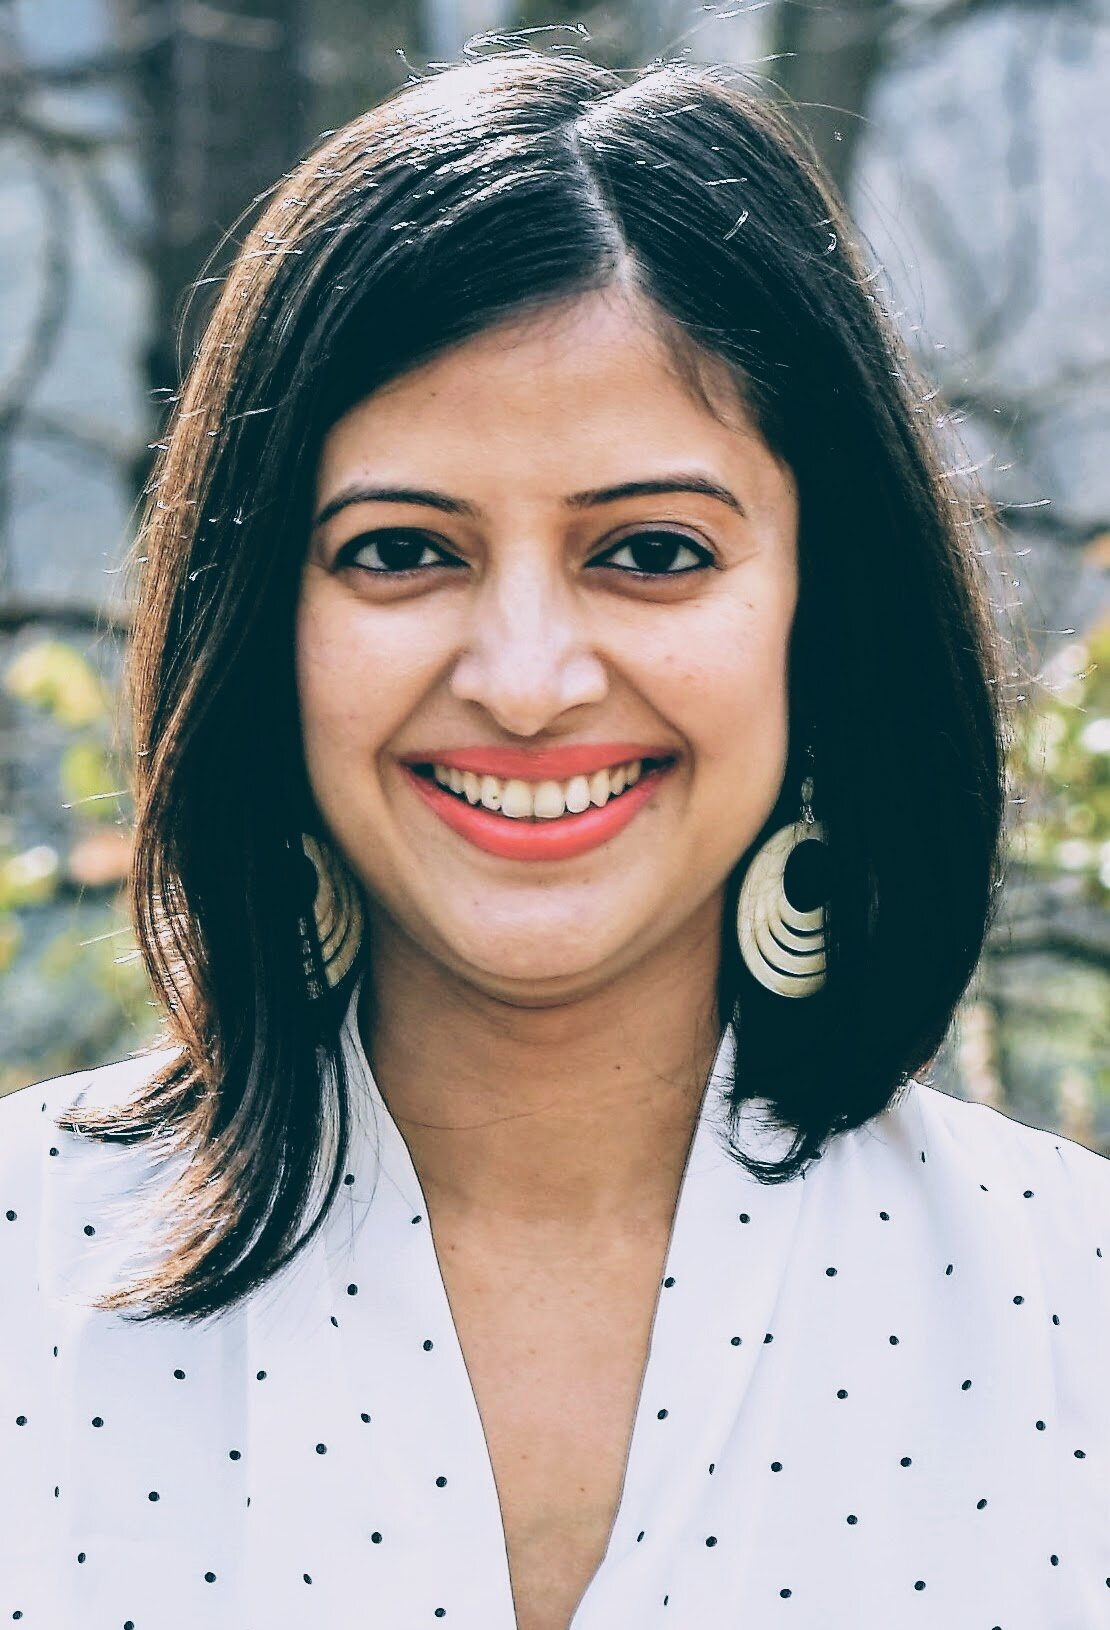 Tina Goyal - About: I am a leader in technology helping build software teams and products and my personal motto is to bring the best out of people. While coaching, I love wearing the lens of appreciation, possibility and progress. I enjoy navigating coaching conversations to unravel and bring the best out of the client.Specialties: Career Coaching, Women in the Workplace, Family Coaching.Availability: Tuesday 12:00-1:00PM, Sunday 10:30AM-12:30PM (Online). Fridays 12:00PM-2:00PM (In Person).Book Now